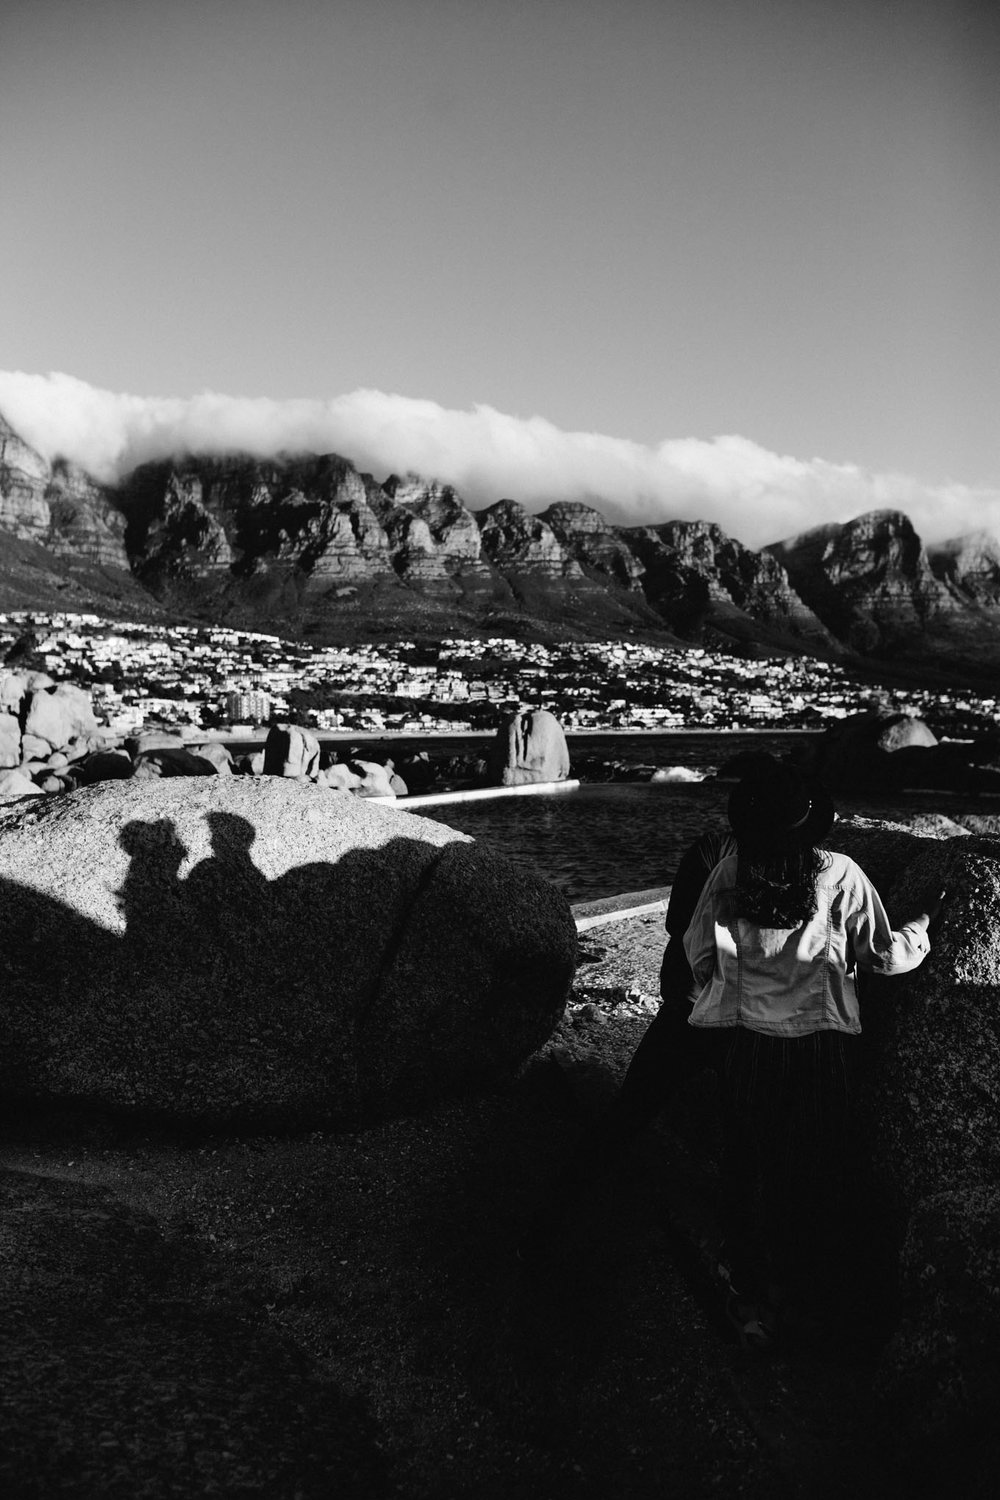 Cape-Town-Pia-Anna-Christian-Wedding-Photography-South-Africa-CJ-27.jpg